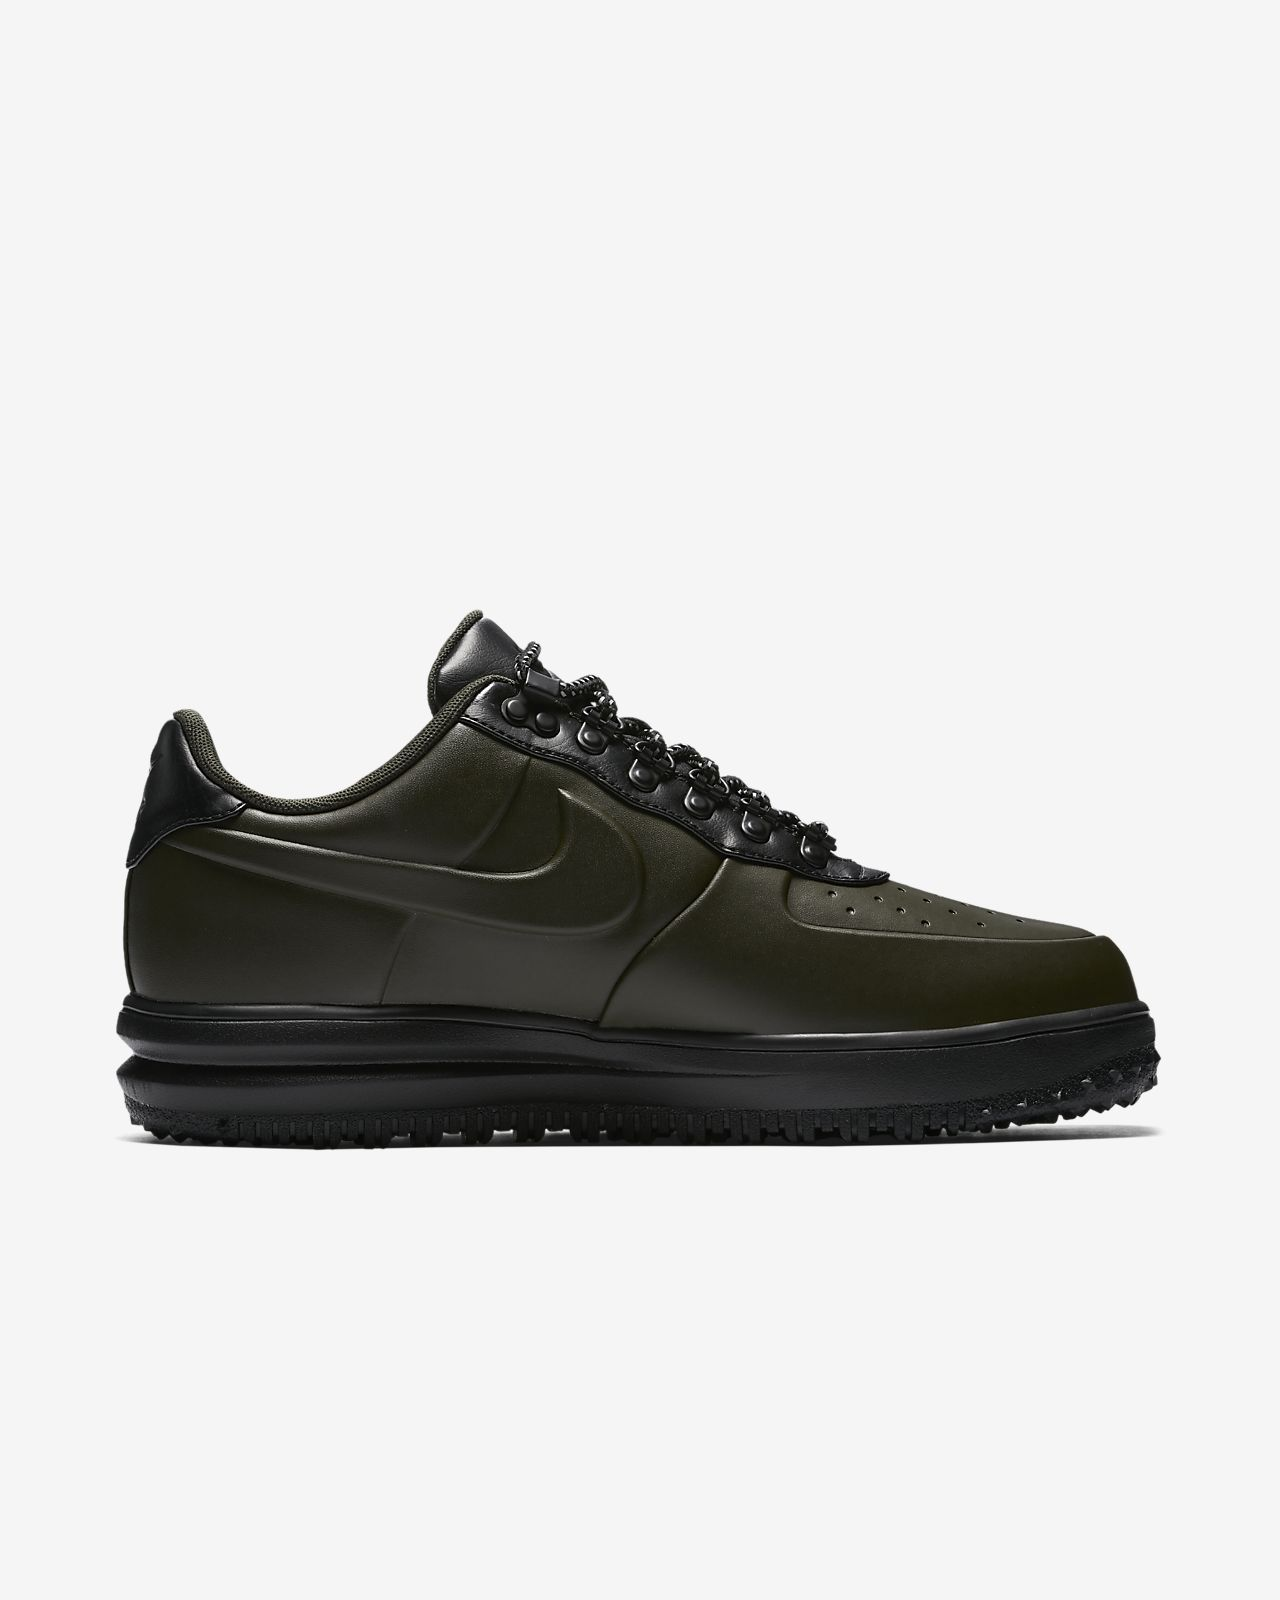 ... Chaussure Nike Lunar Force 1 Duckboot Low pour Homme